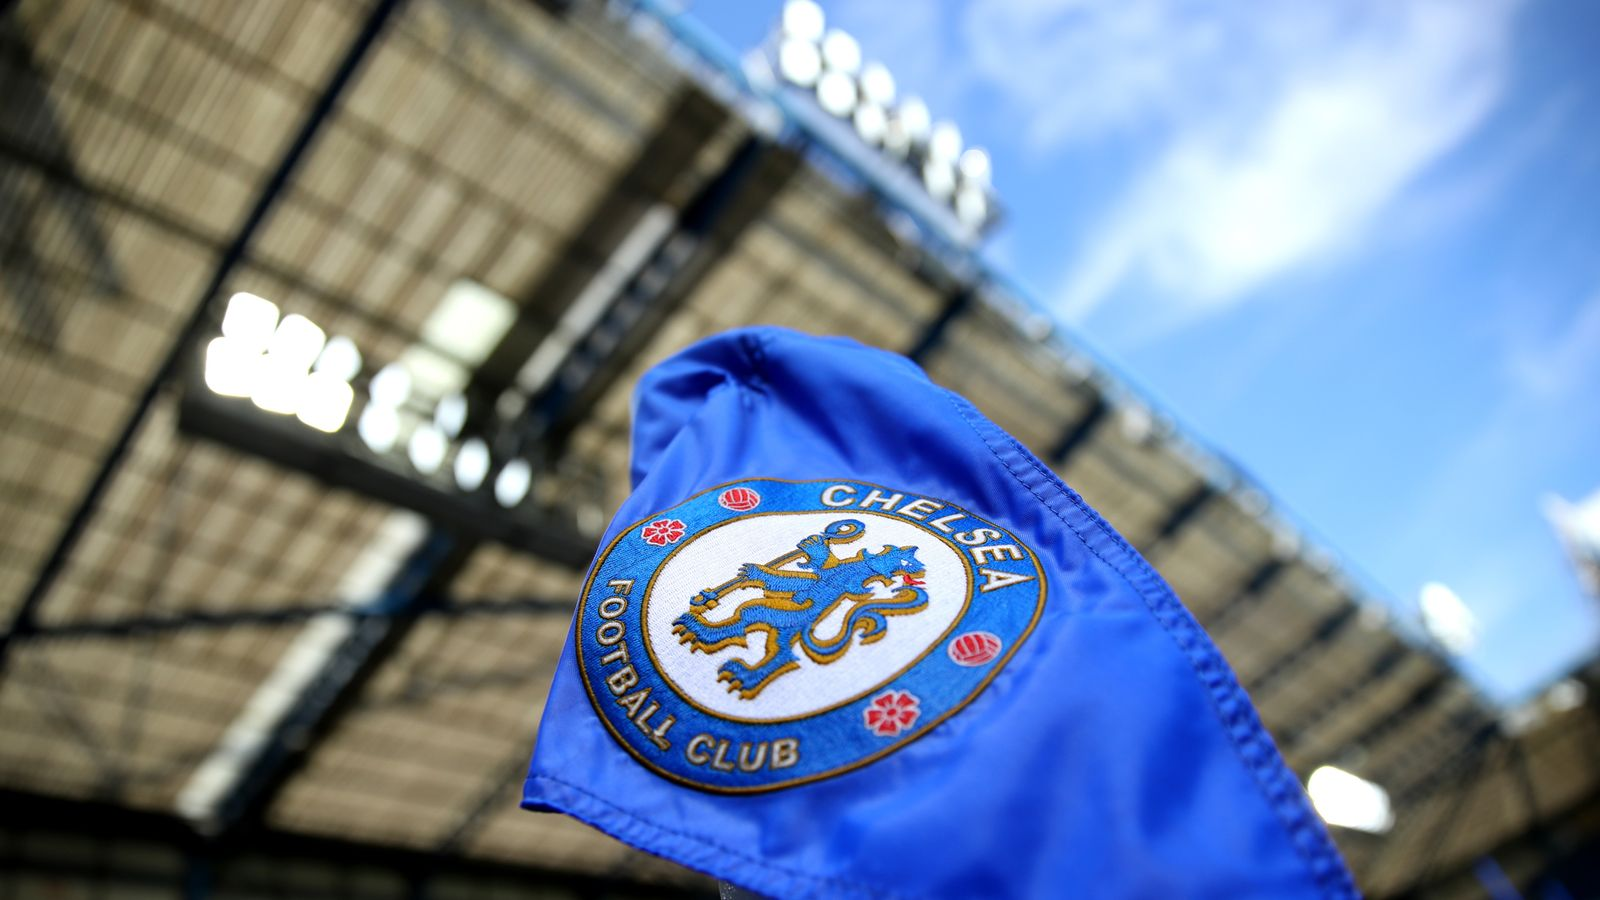 Chelsea free to sign players in January after appeal